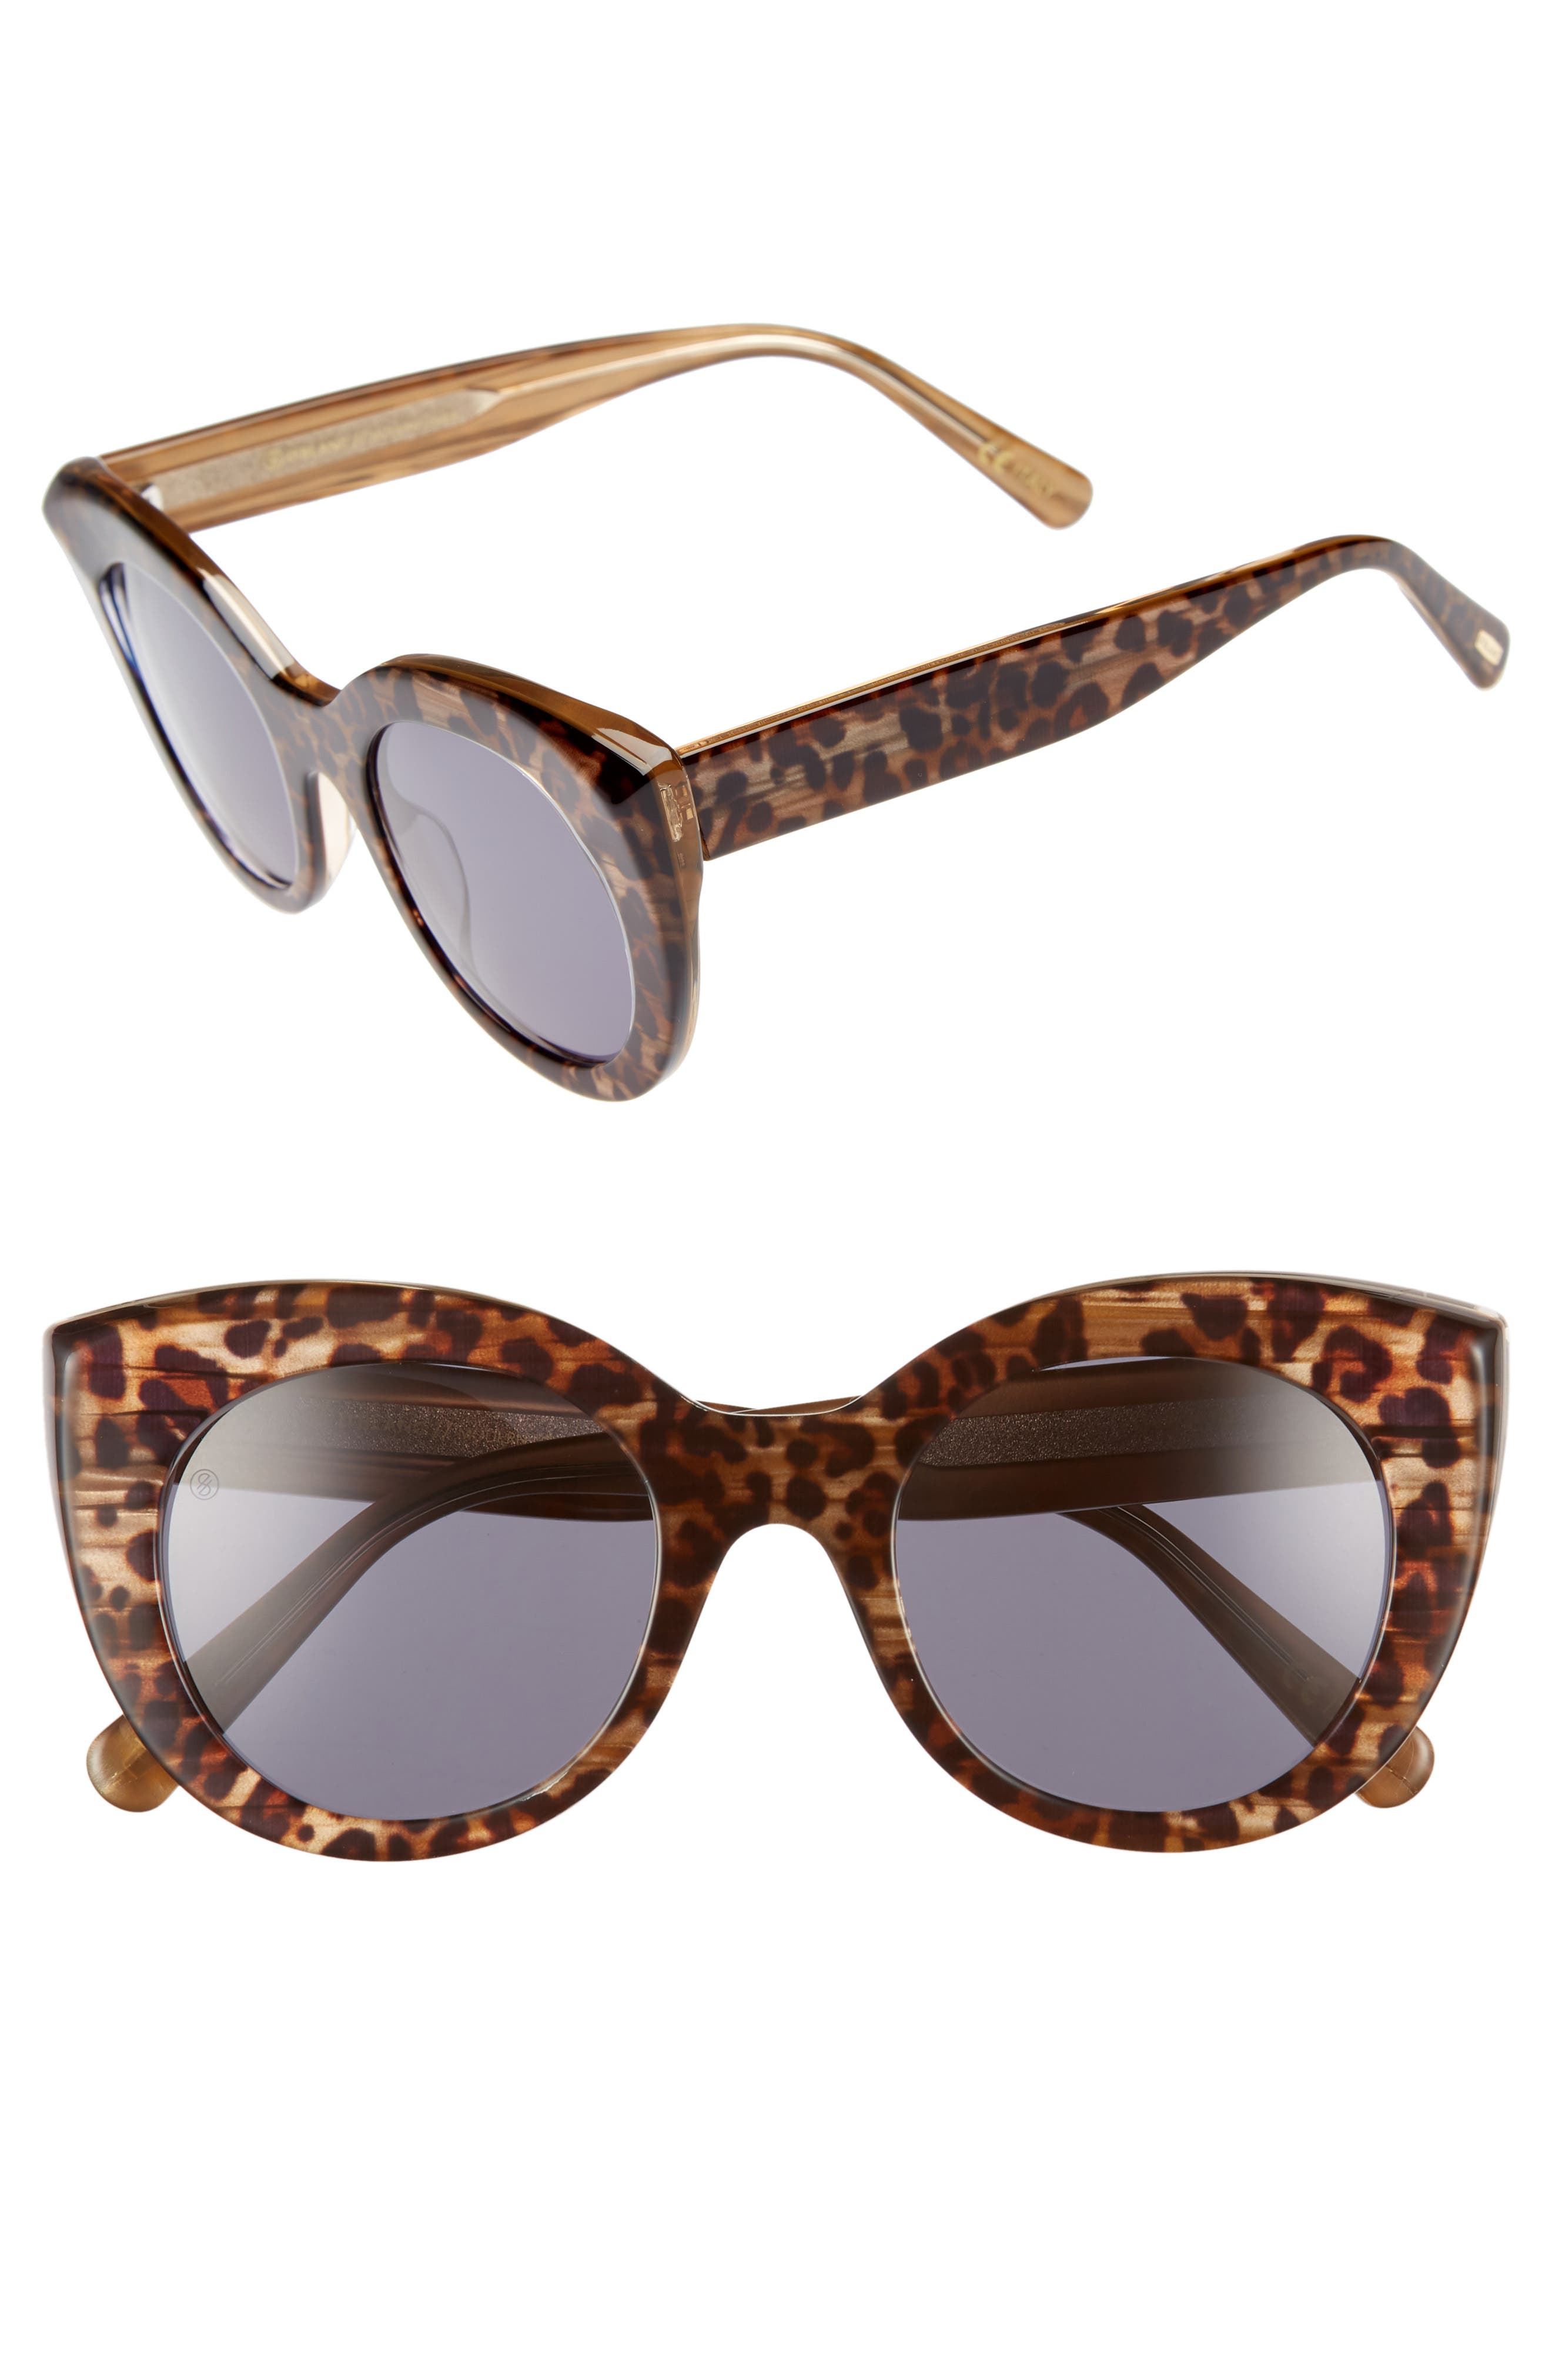 D'BLANC x Amuse Society Modern Lover 51mm Cat Eye Sunglasses,                             Main thumbnail 1, color,                             200